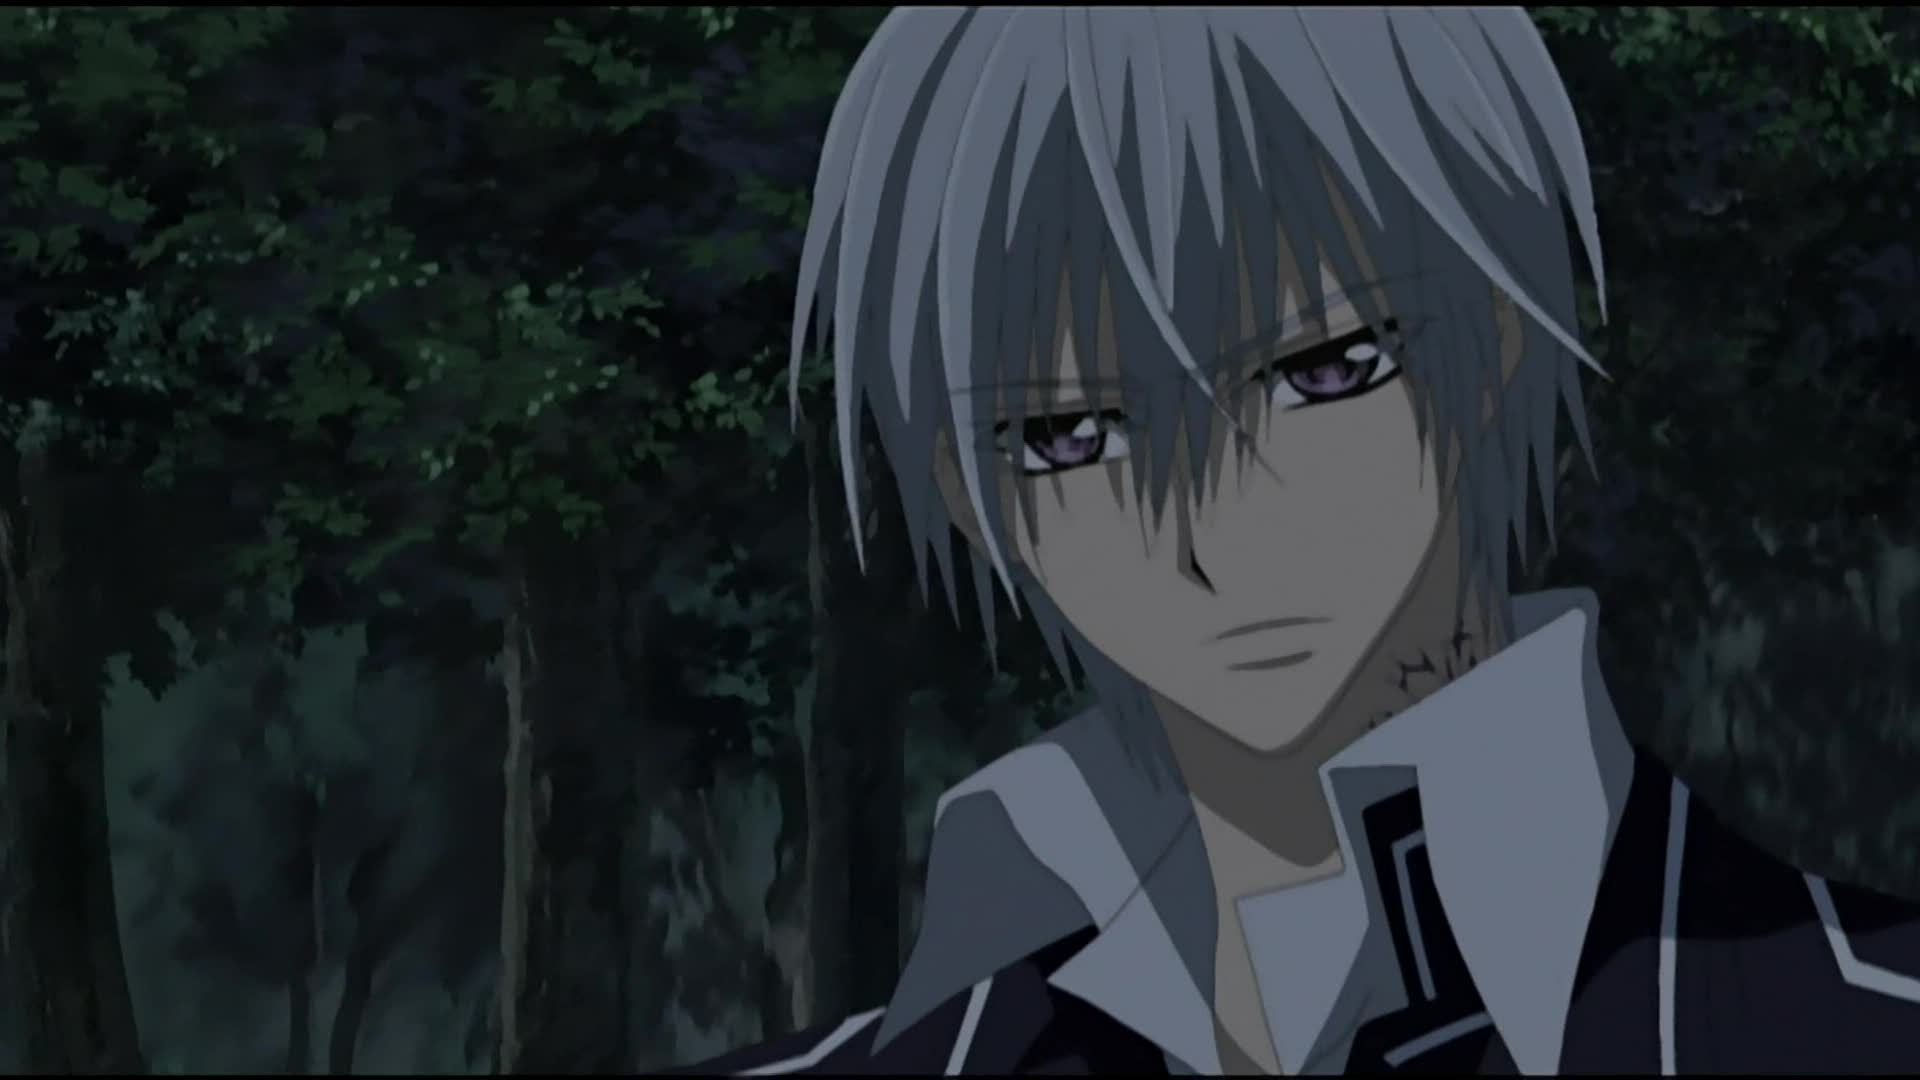 """Vampire Knight"" (Guilty) - Episode 1 [Sinners Of Fate]"